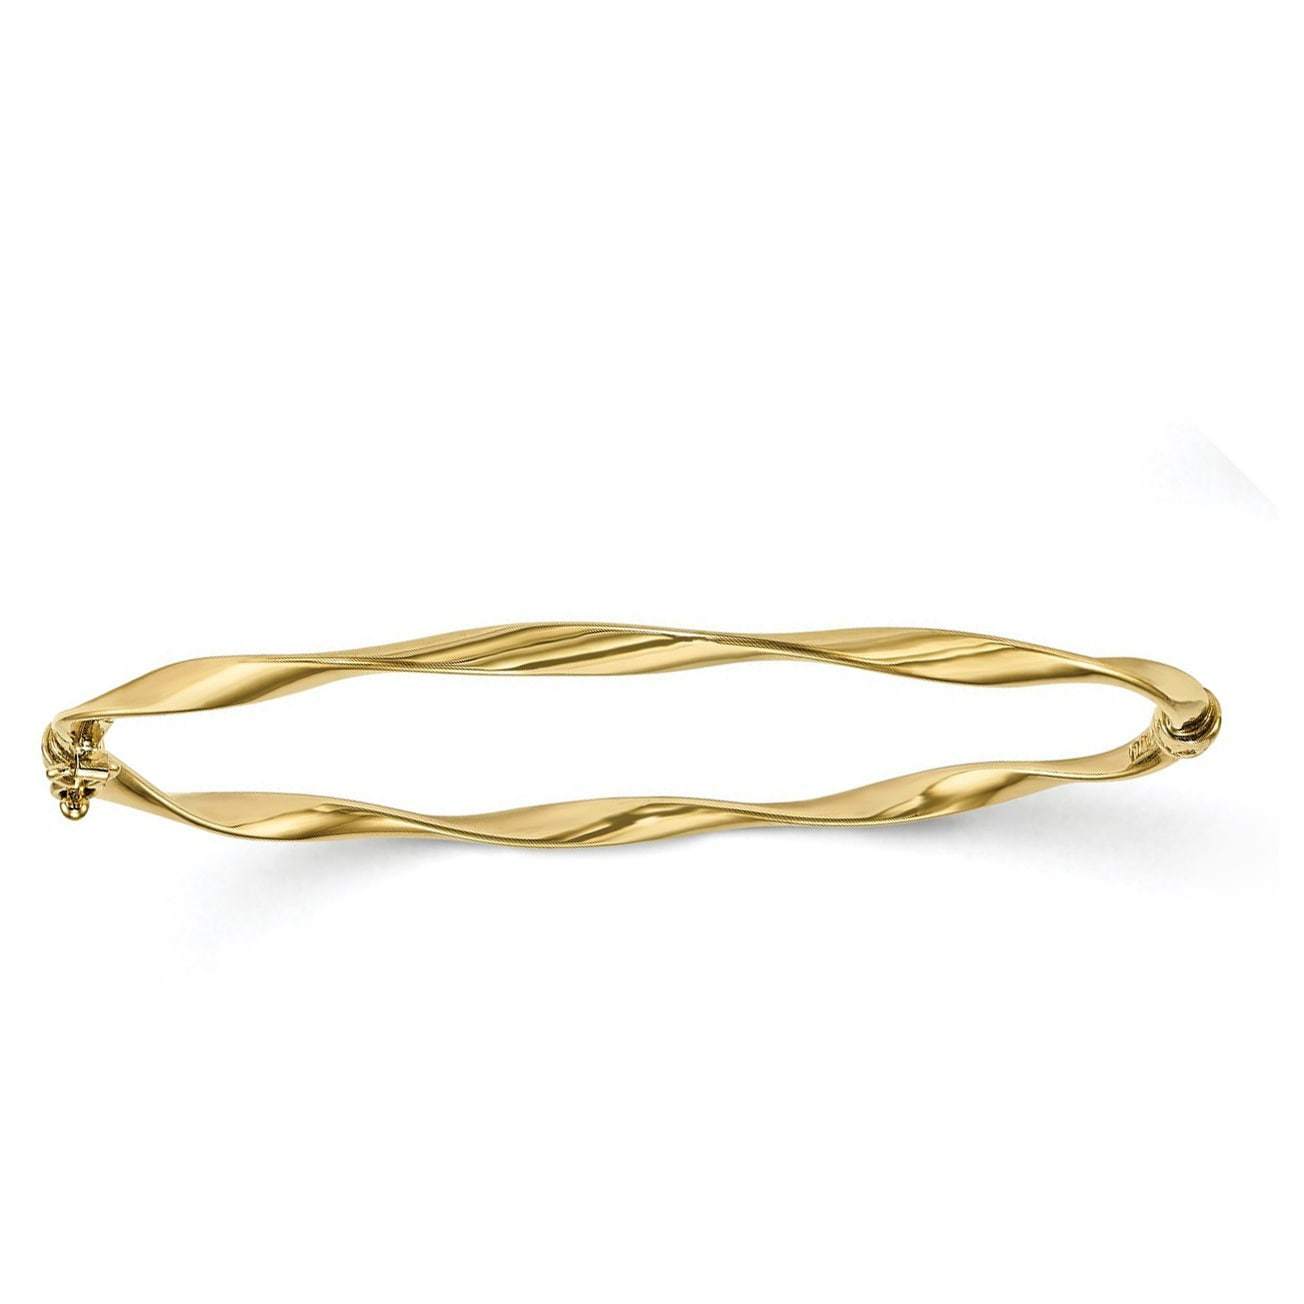 follow of bracelet with love designs cartier diamond beautiful traditional shaped unique karat more gold yellow for lovely bangle bracelets bangles pear